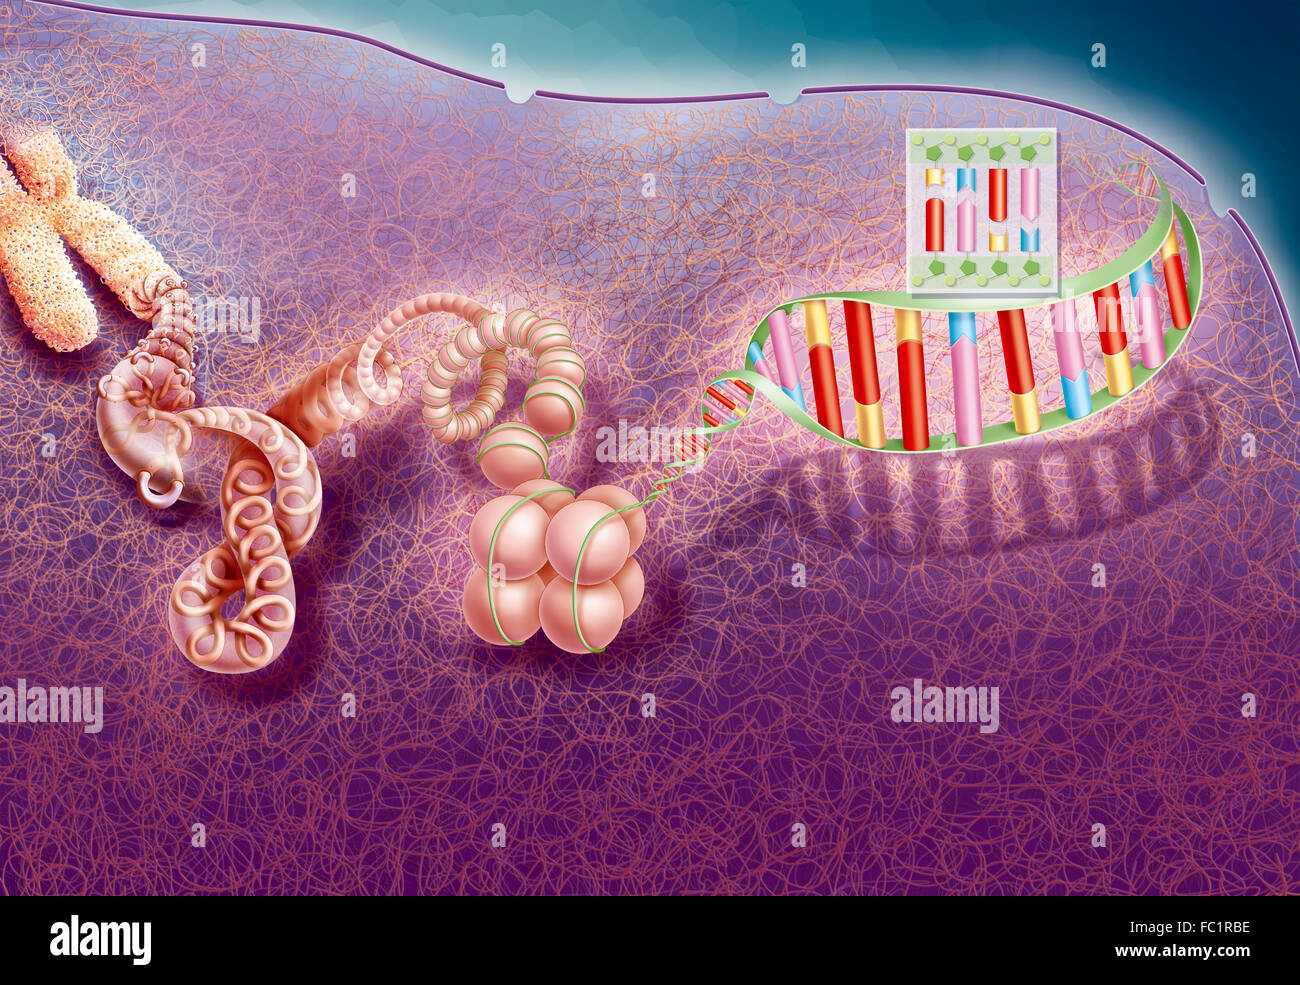 DNA COMPACTION - Stock Image